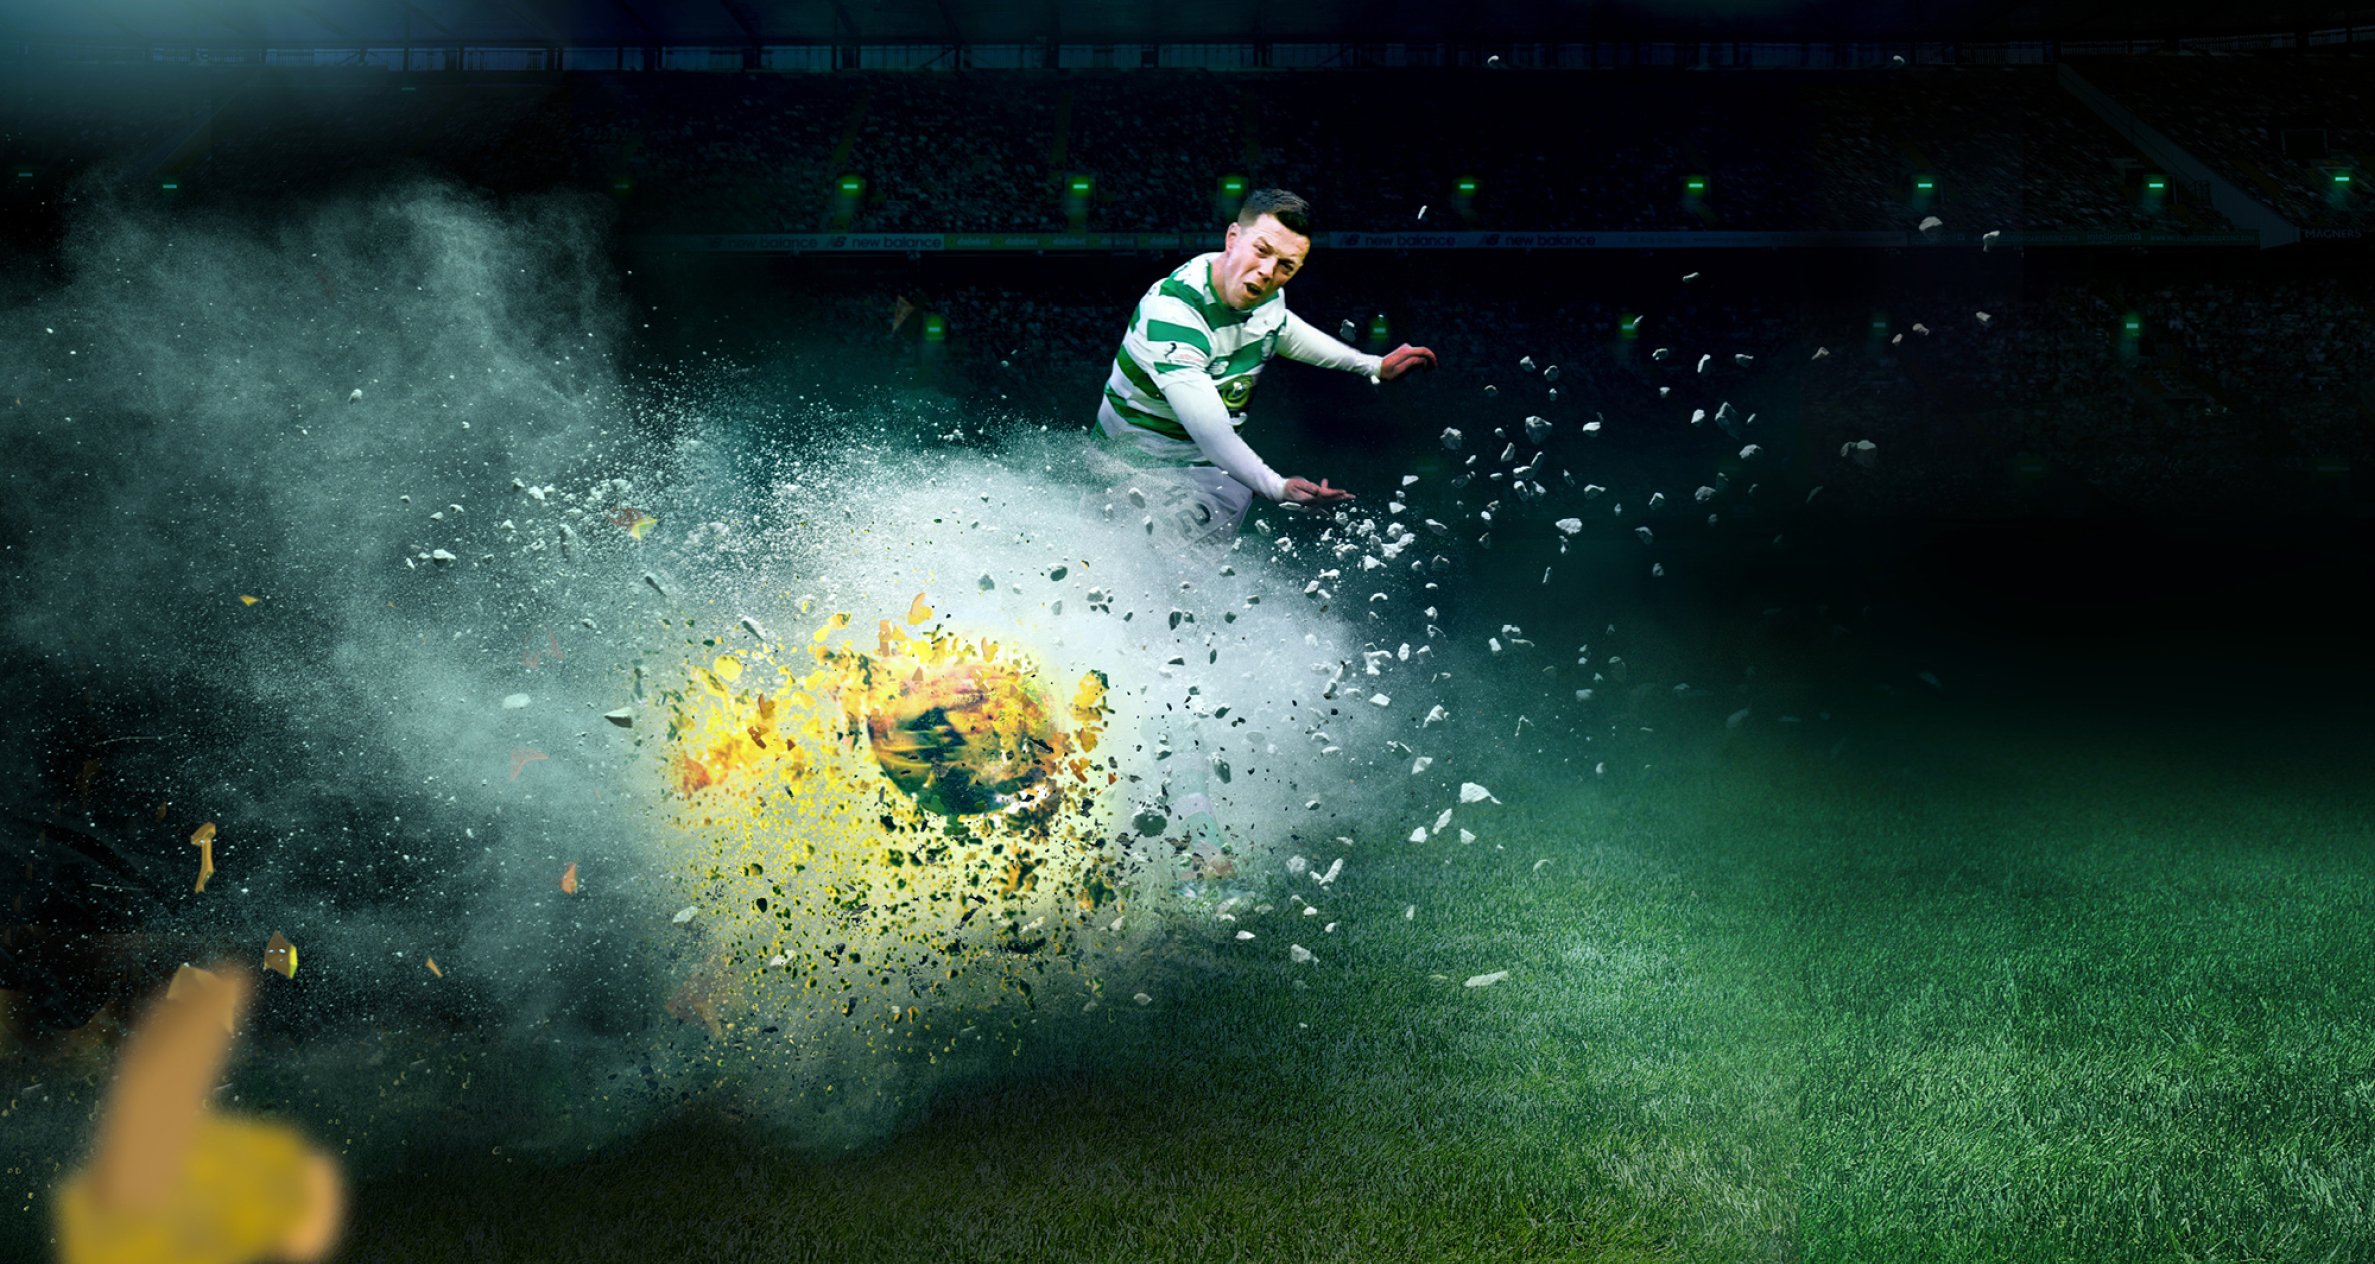 Celtic 'Power of Paradise' Campaign by Maguires